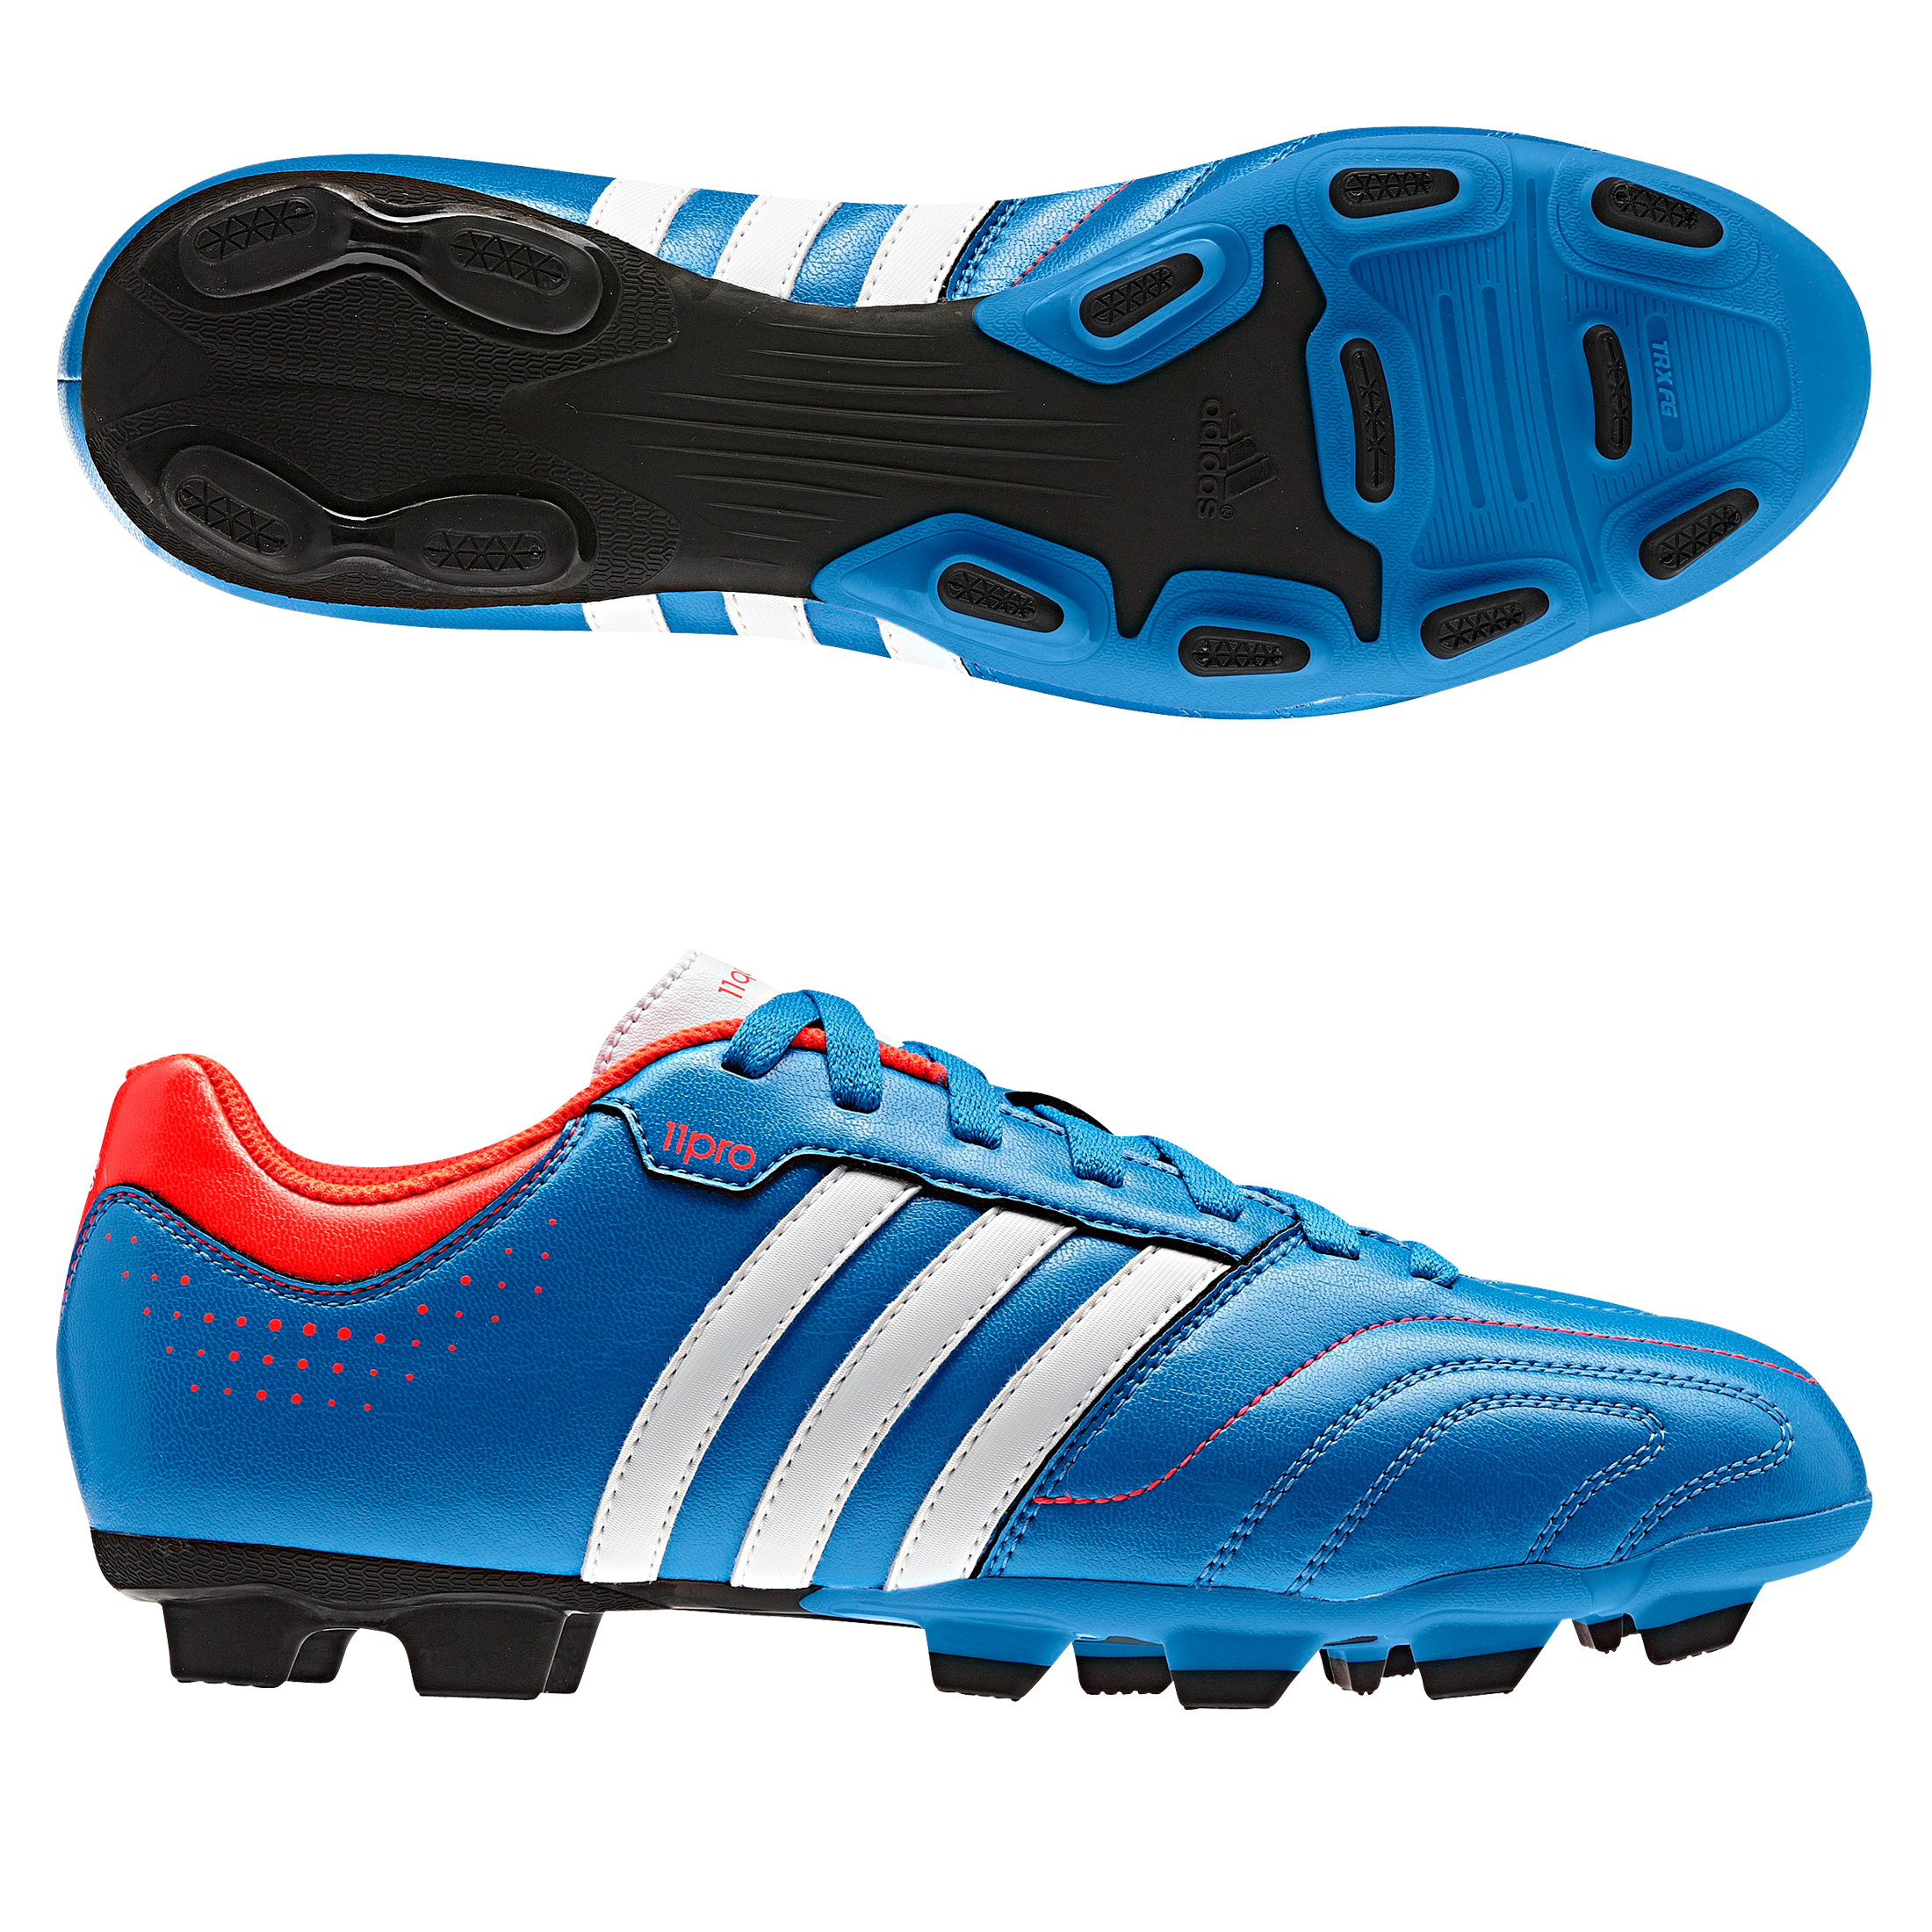 Adidas 11Questra TRX Firm Ground Football Boots - Bright Blue/Running White/Infrared